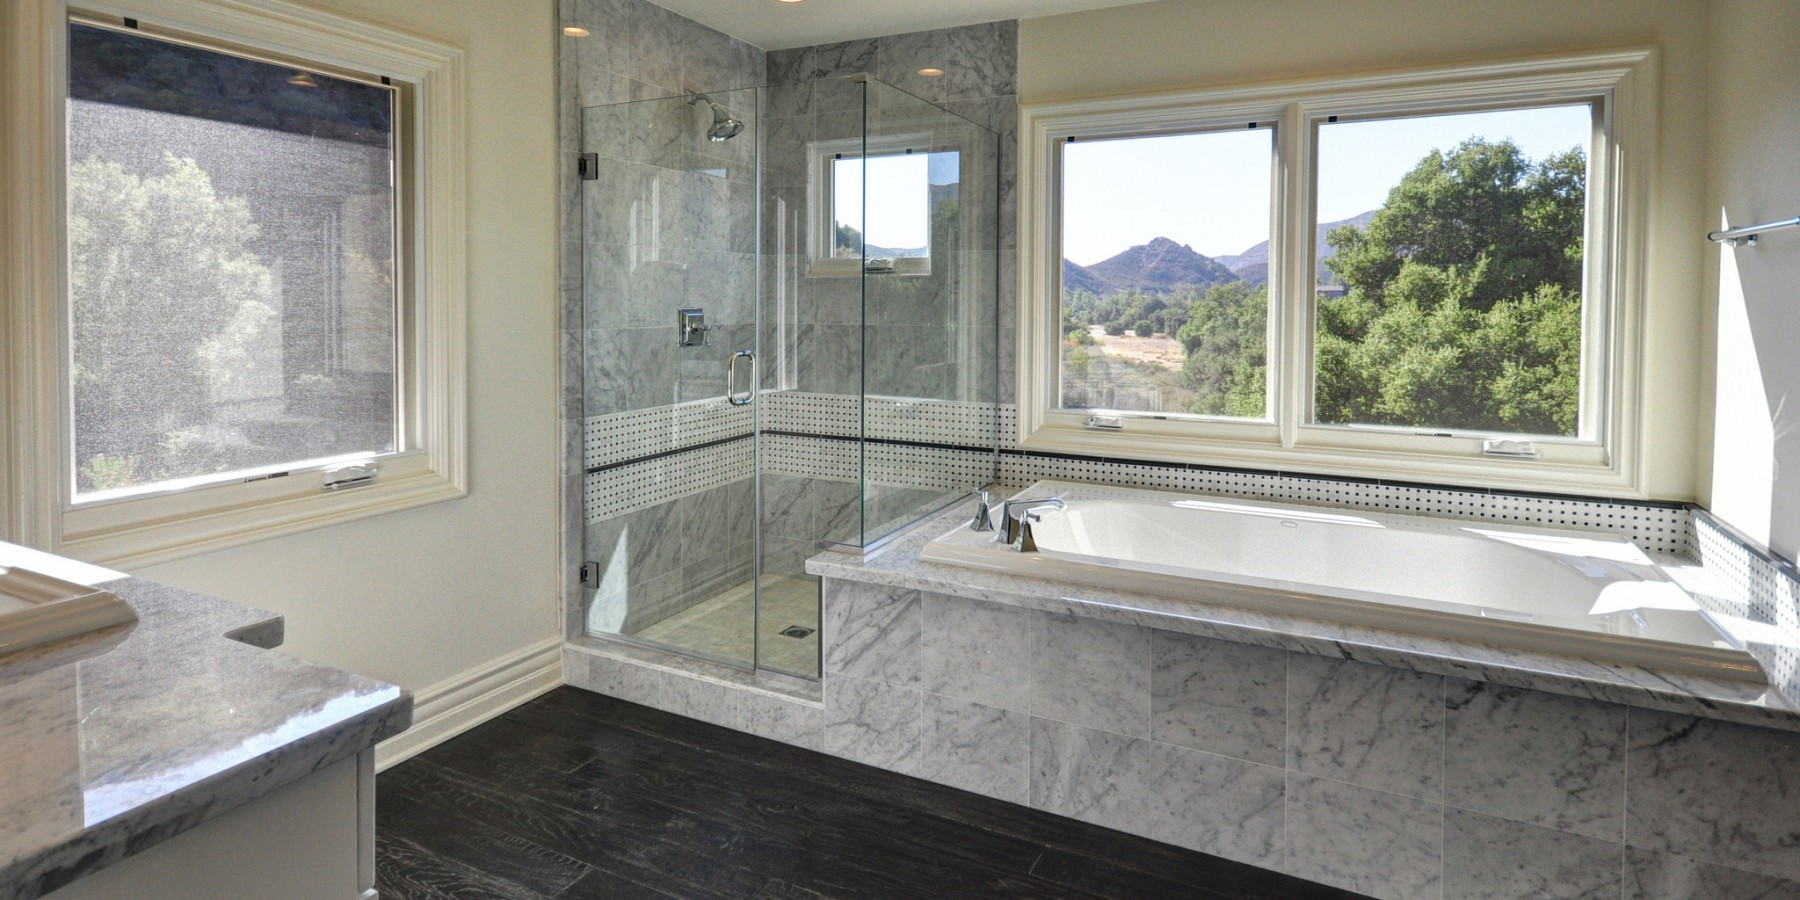 2006 SHADOW CREEK Road, Other, CA 91301